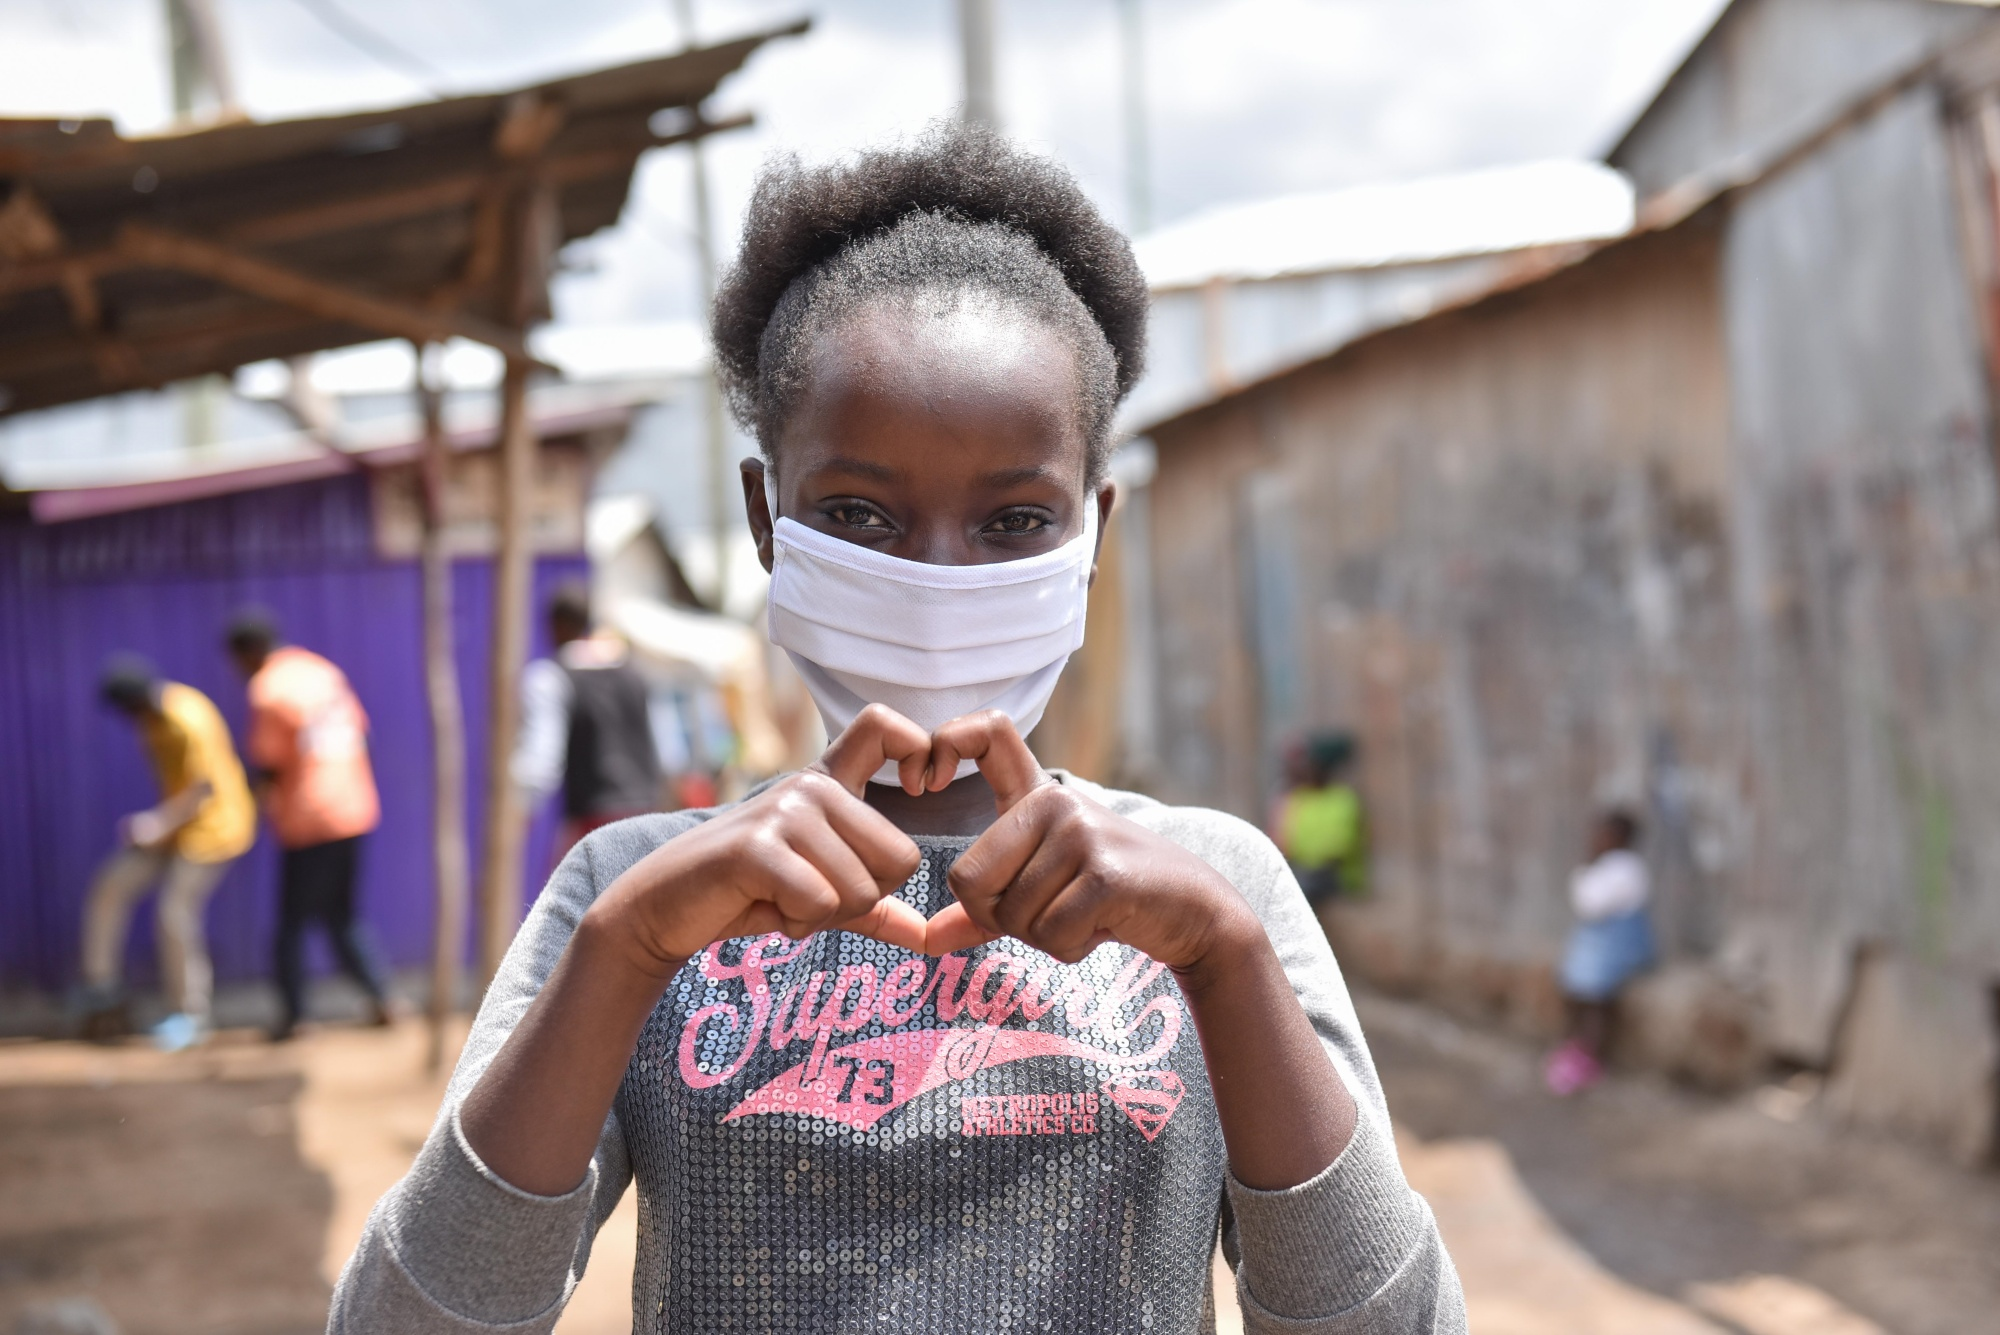 A young girl wearing a mask and making a heart with her hands